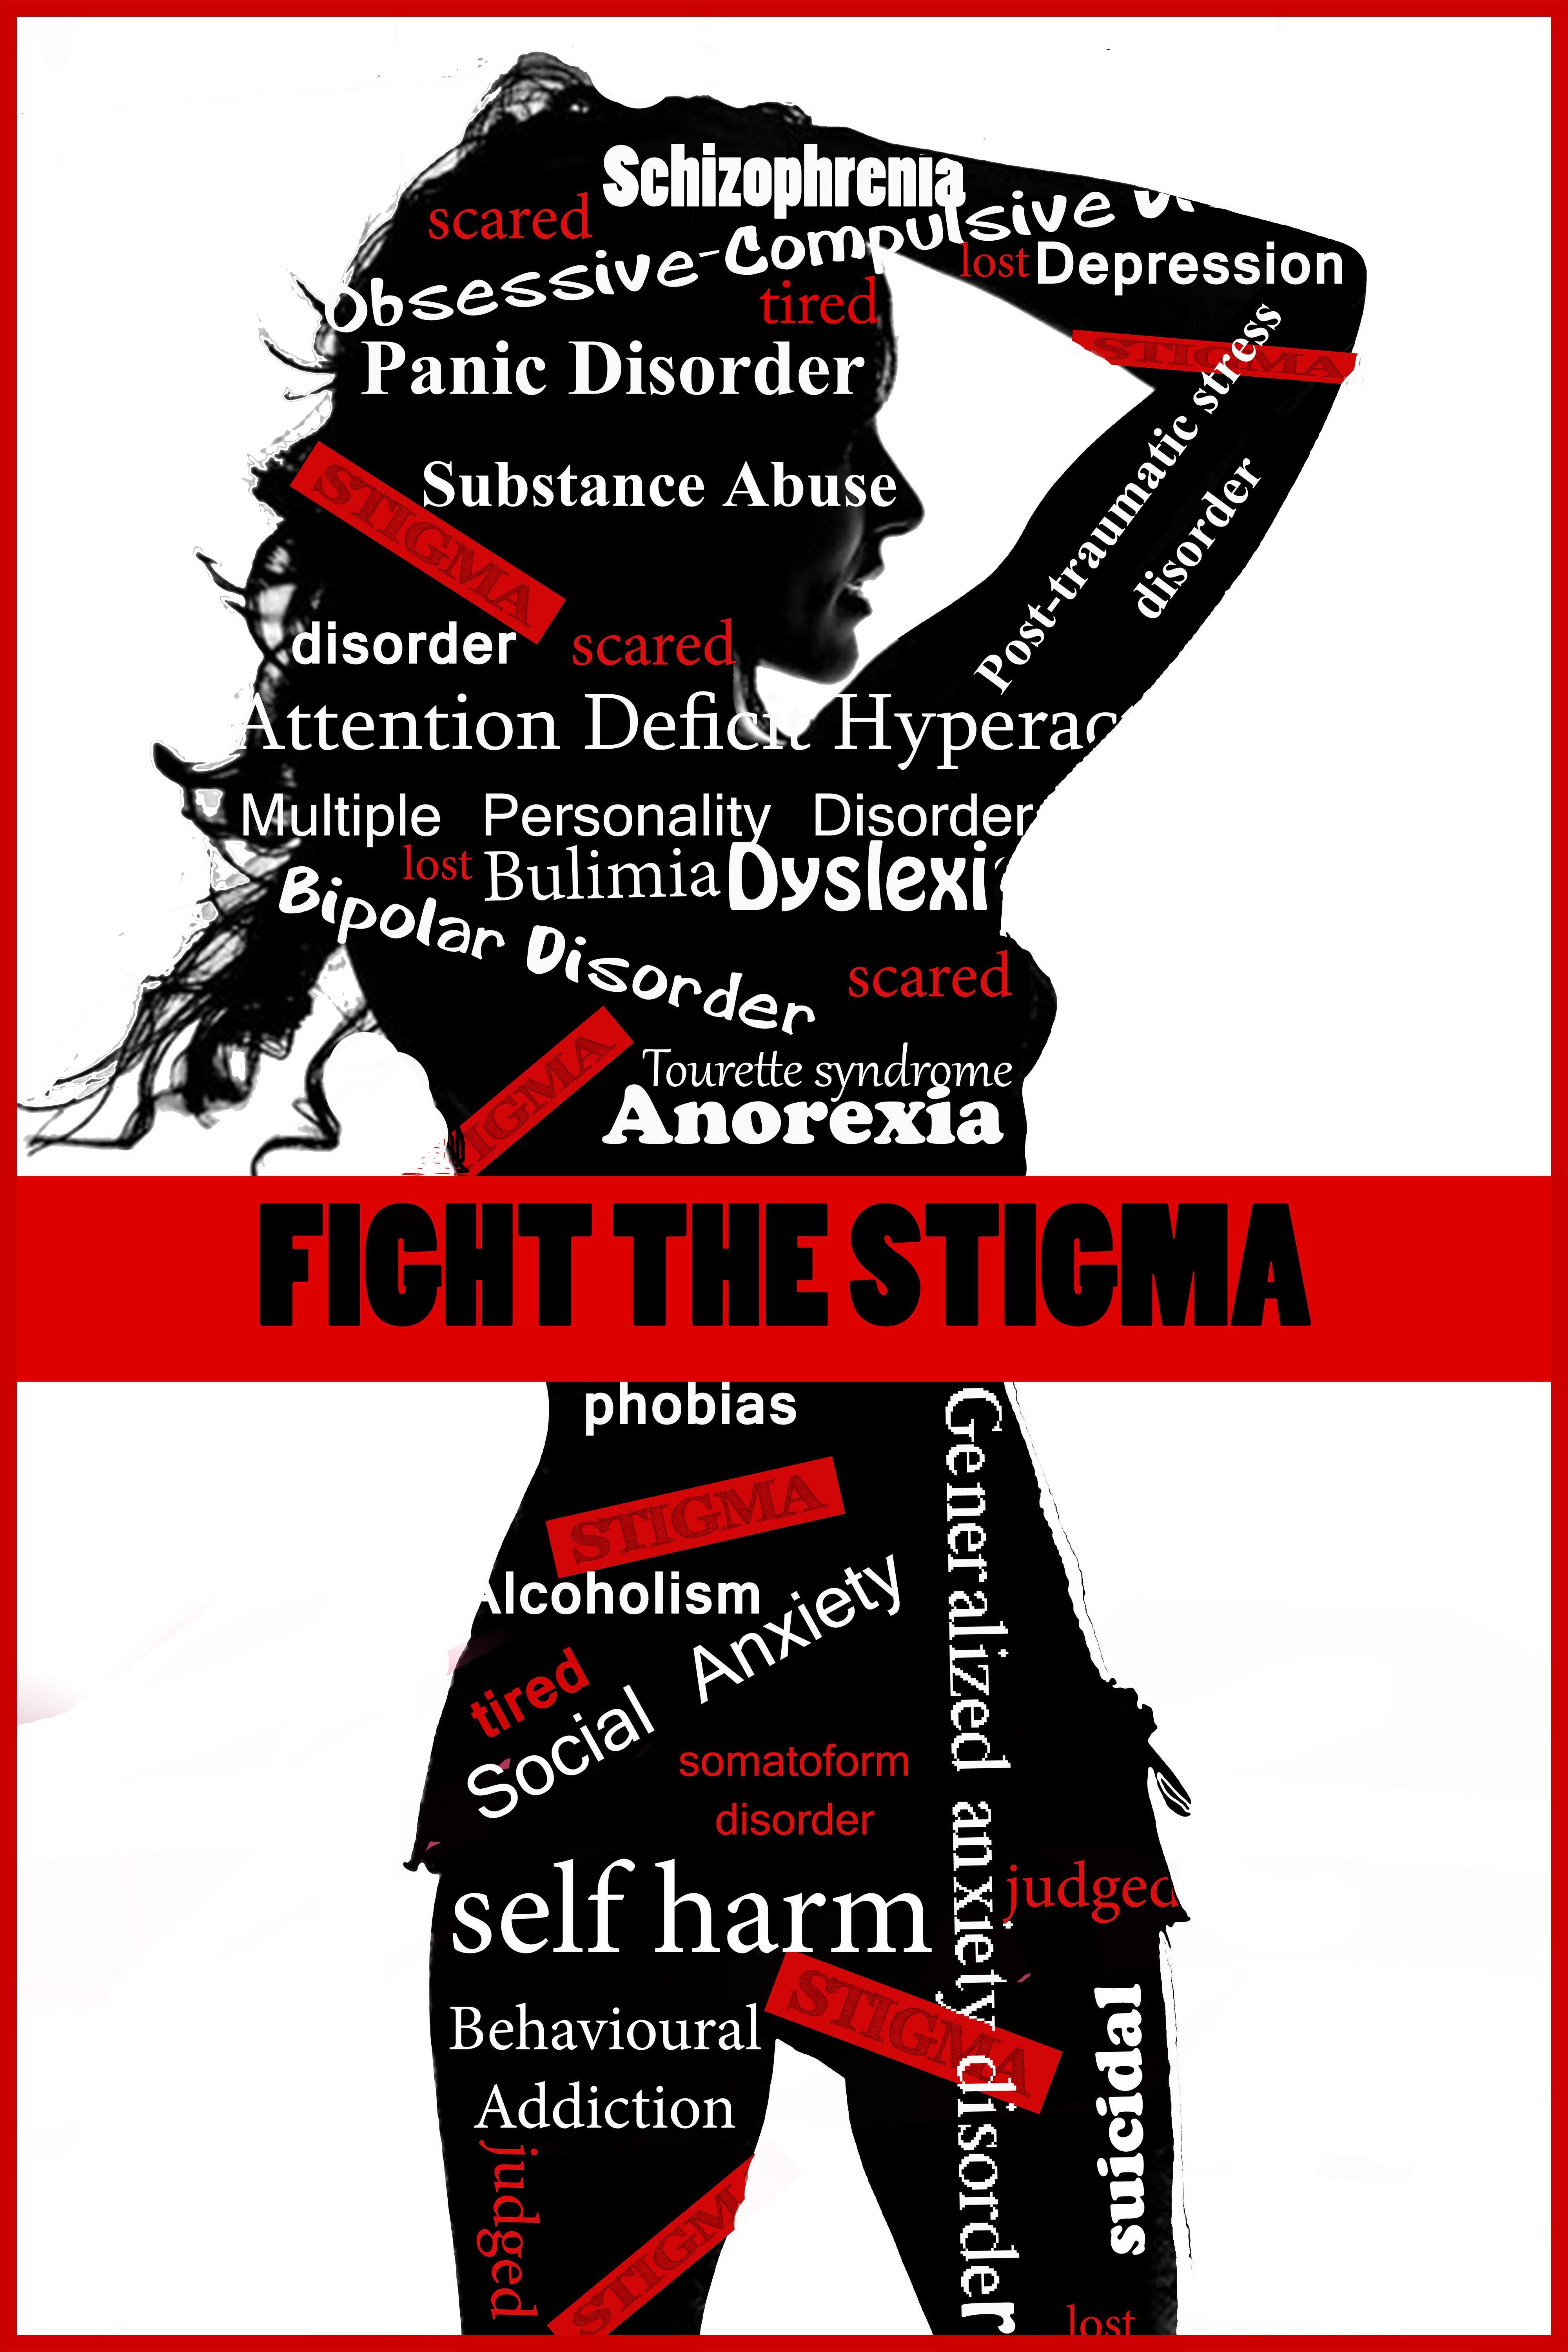 bipolar disorder as a social stigma Co-author of bipolar disorder for dummies opens discussion of whether the stigma of bipolar disorder should really be considered discrimination.